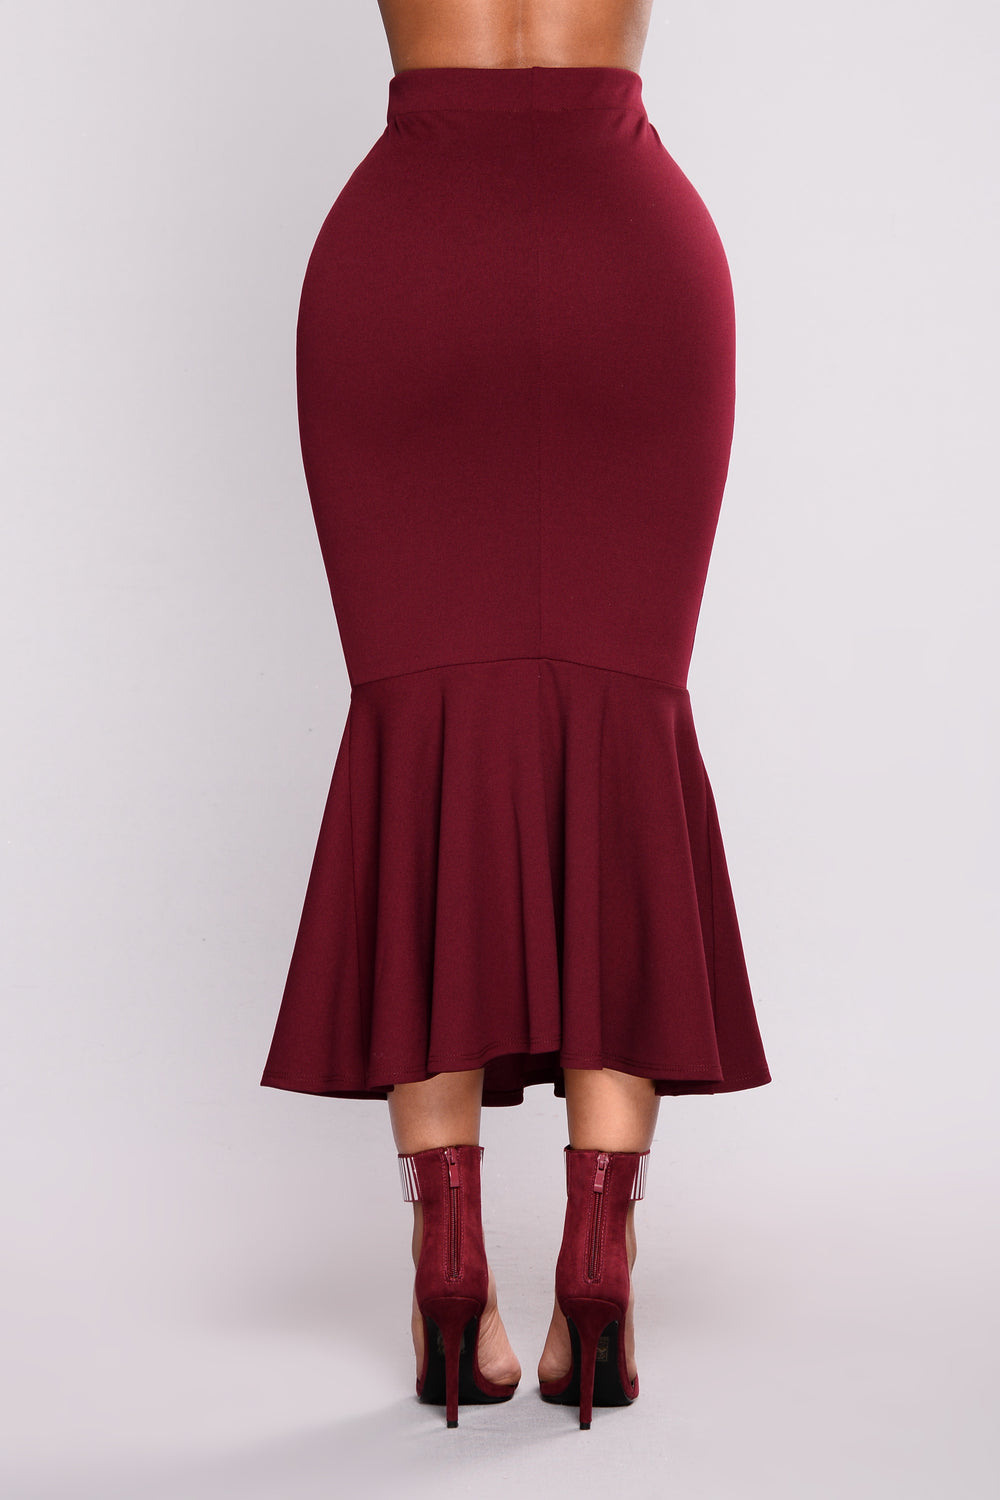 Twilight Ruffle Skirt - Oxblood